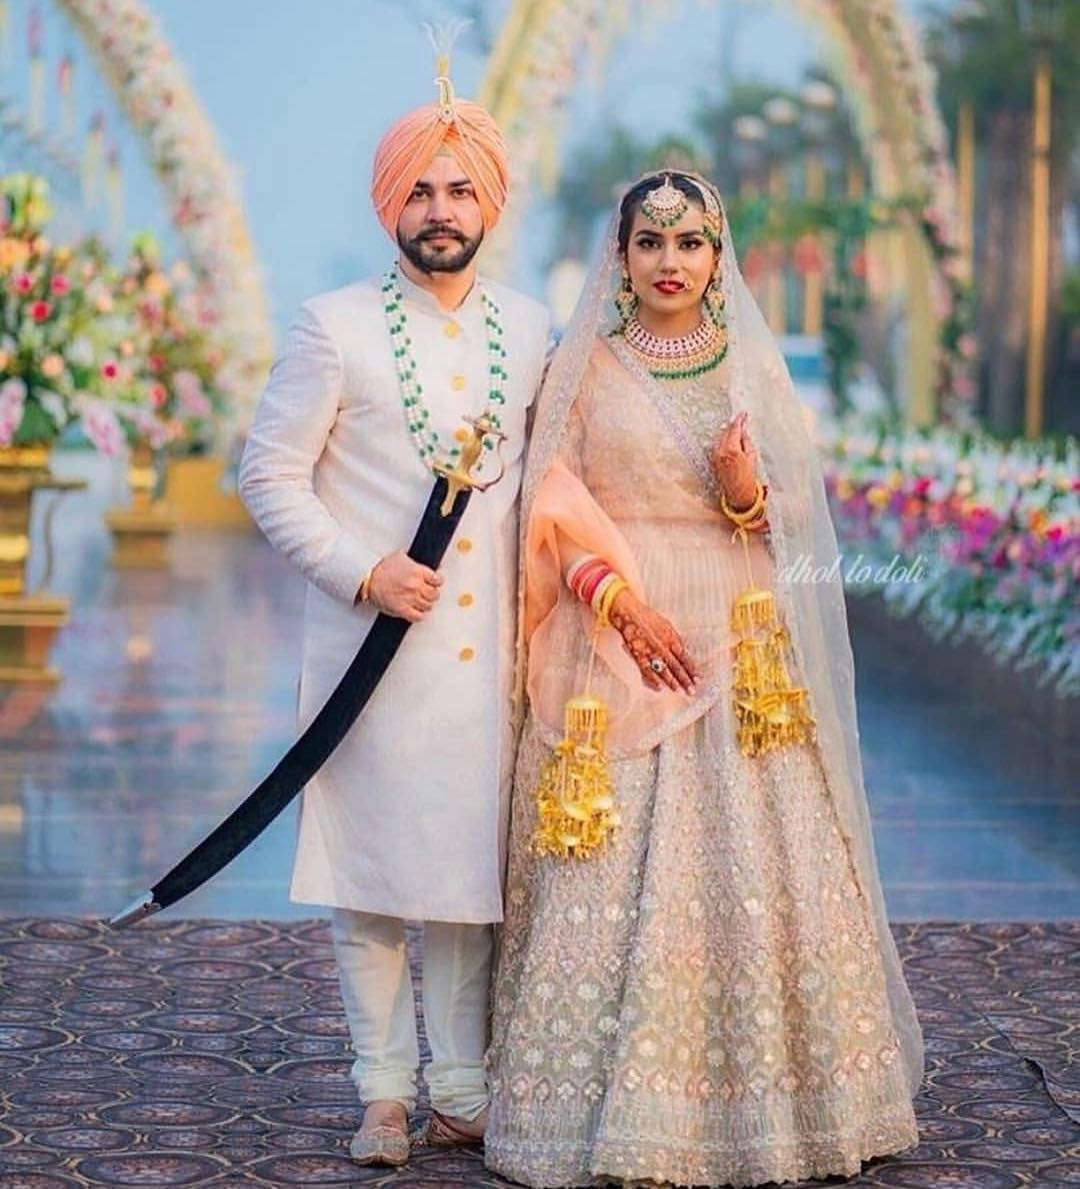 Punjabi Couple Images Punjabi Couple Pics Punjabi 2020 Wedding Couple Images Lovely Couple By Statuspb Medium